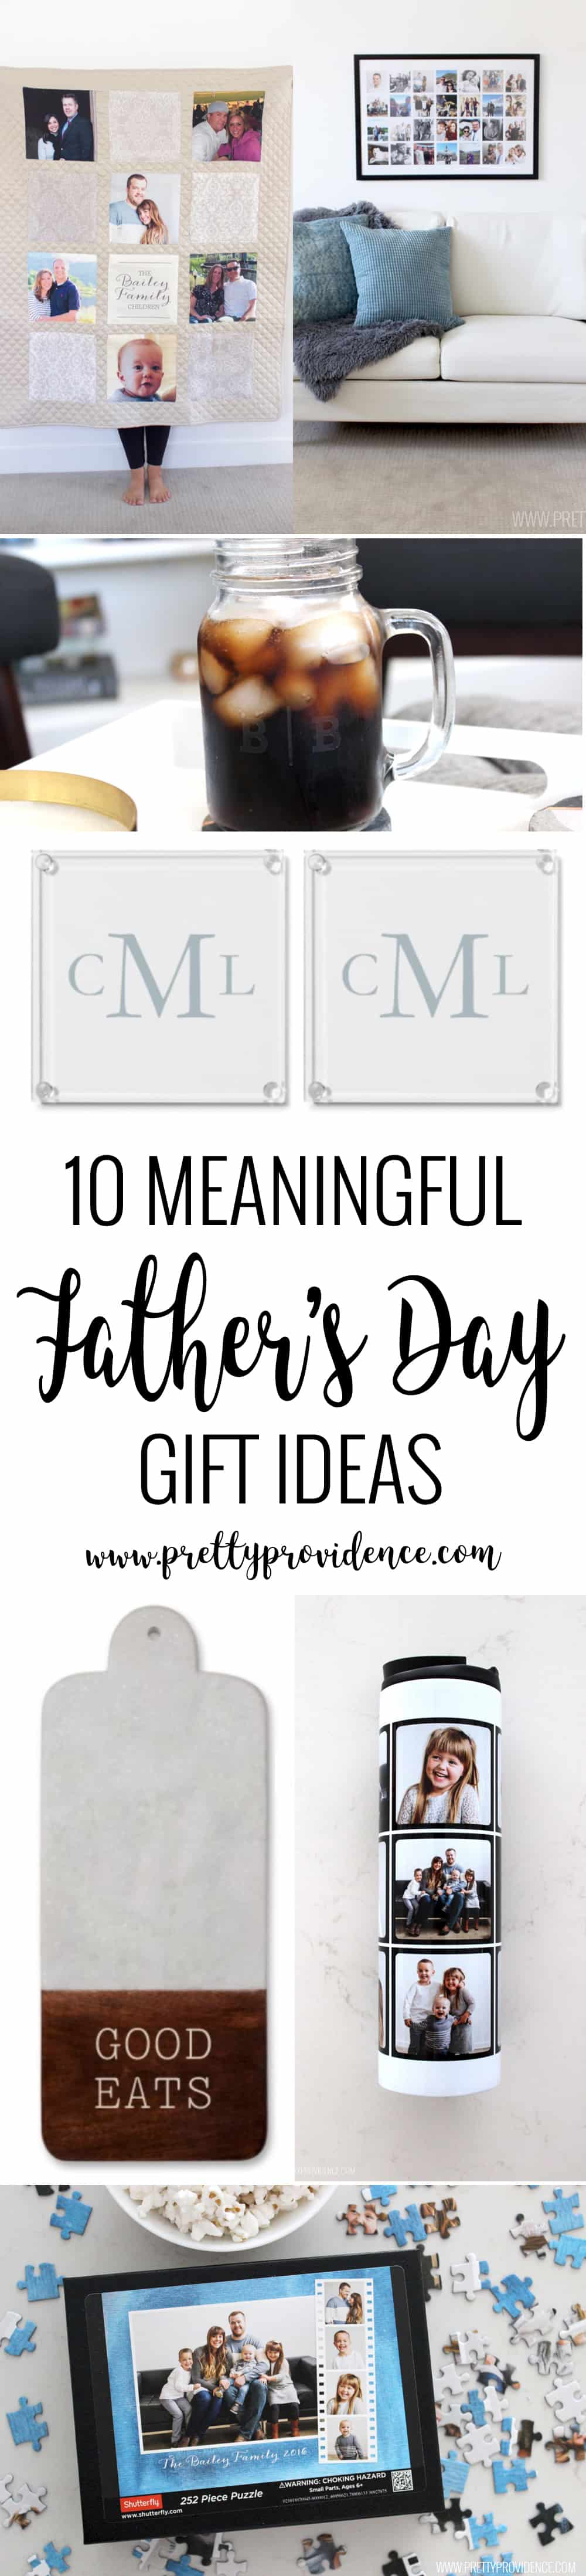 10 amazing personalized fathers day gift ideas! Gifts for the special man in your life, in all different price points! Lots of good ideas in here!